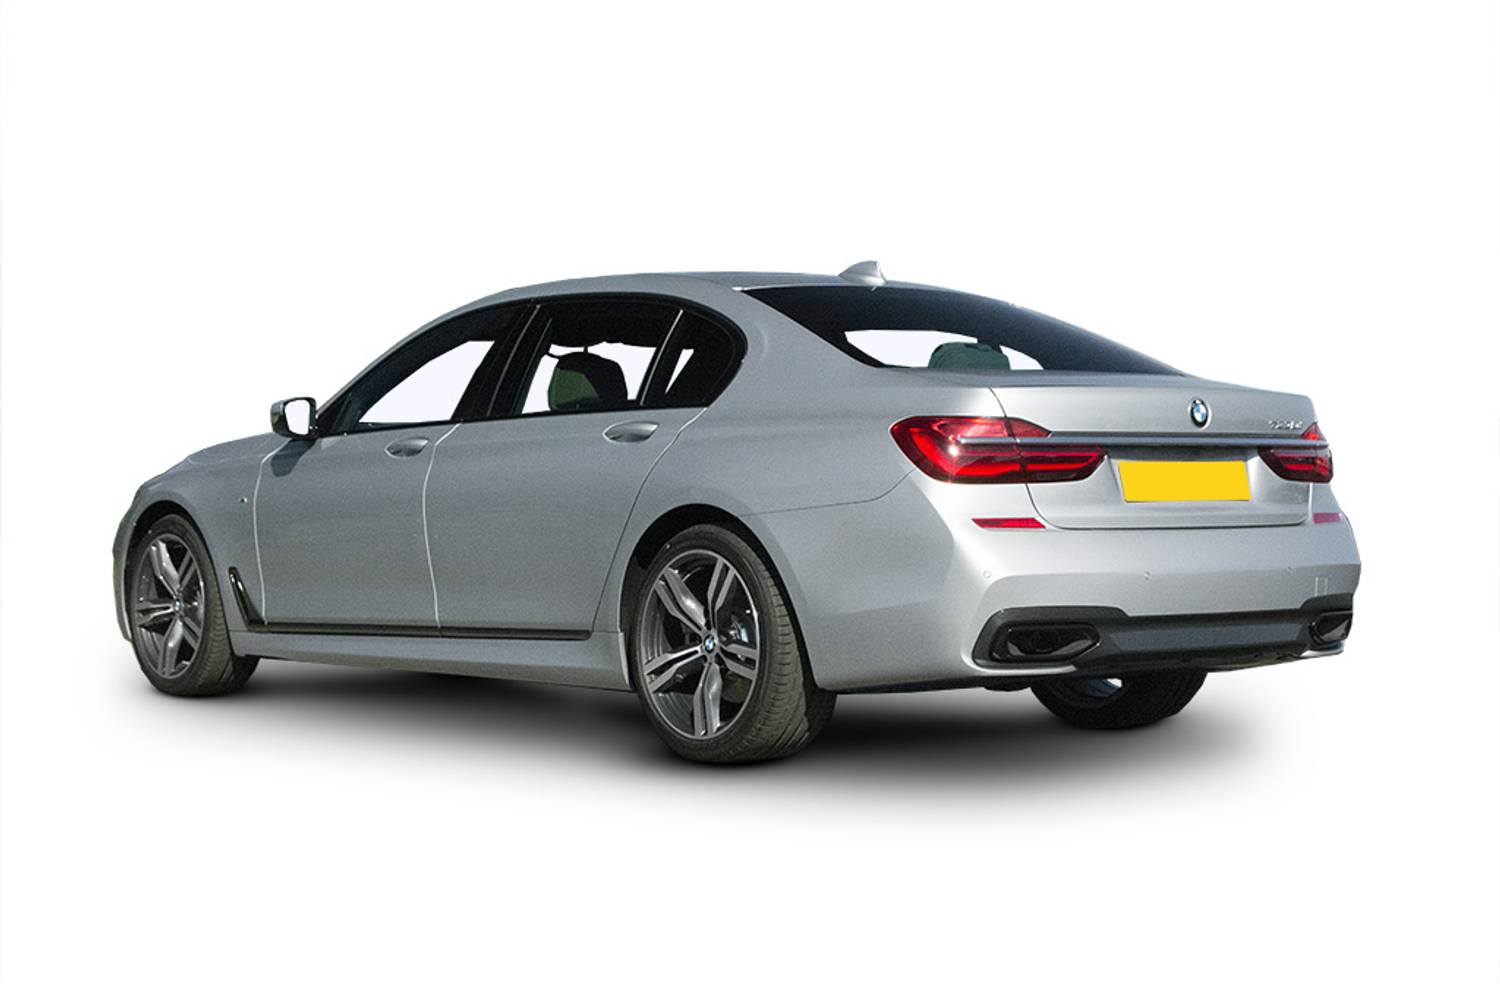 BMW 7 Series Saloon 4dr Auto Rear Three Quarter